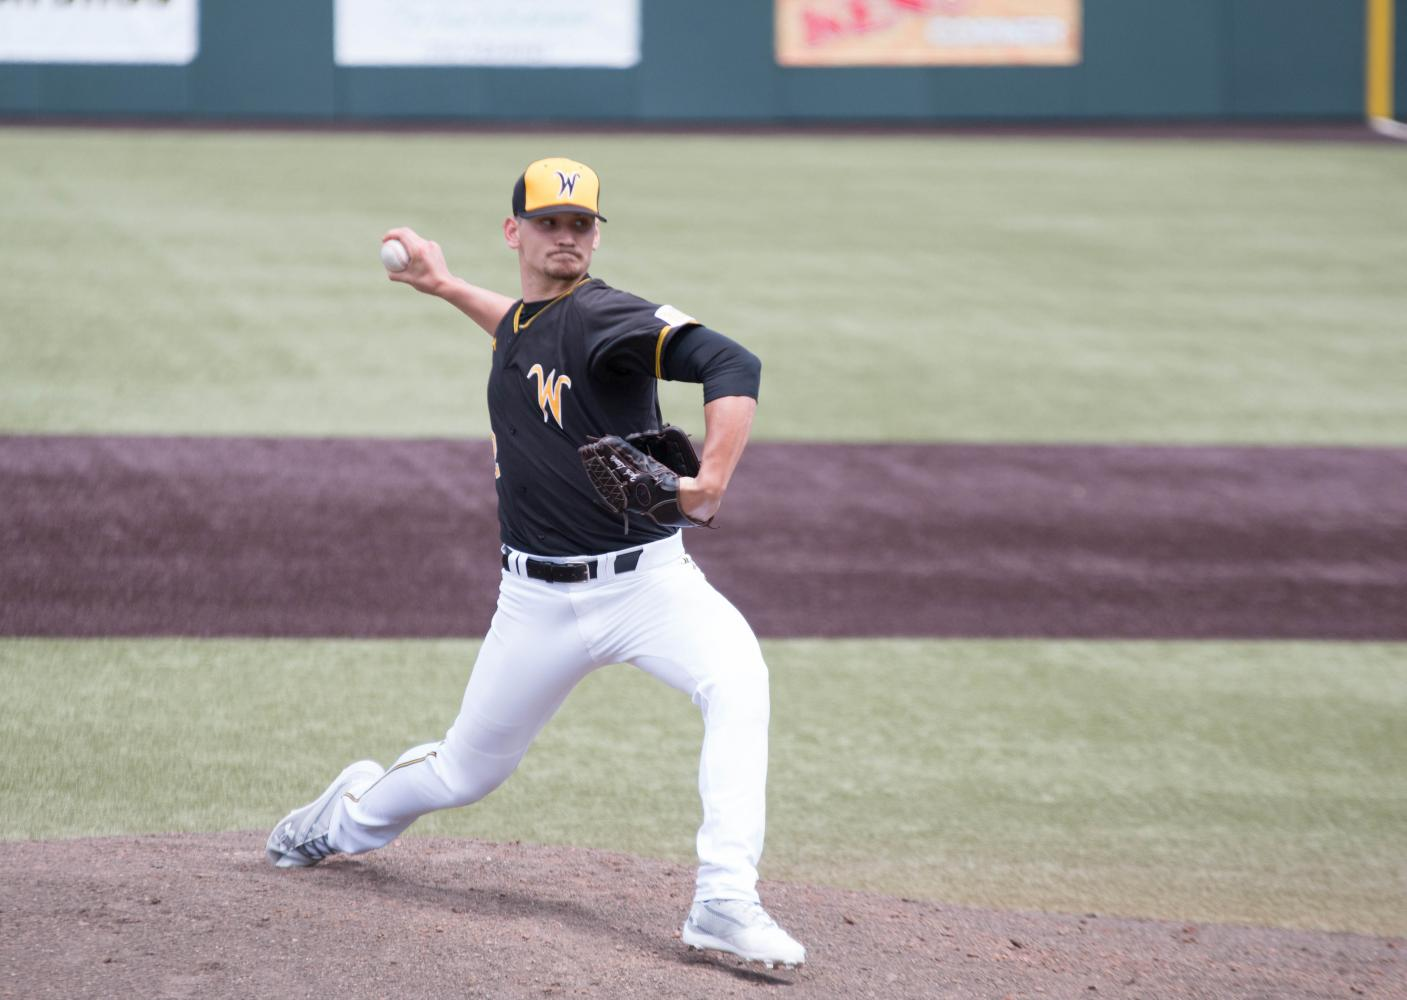 Wichita State pitcher Zach Lewis pitches during the first game against Illinois State at Eck Stadium (April 28, 2017)